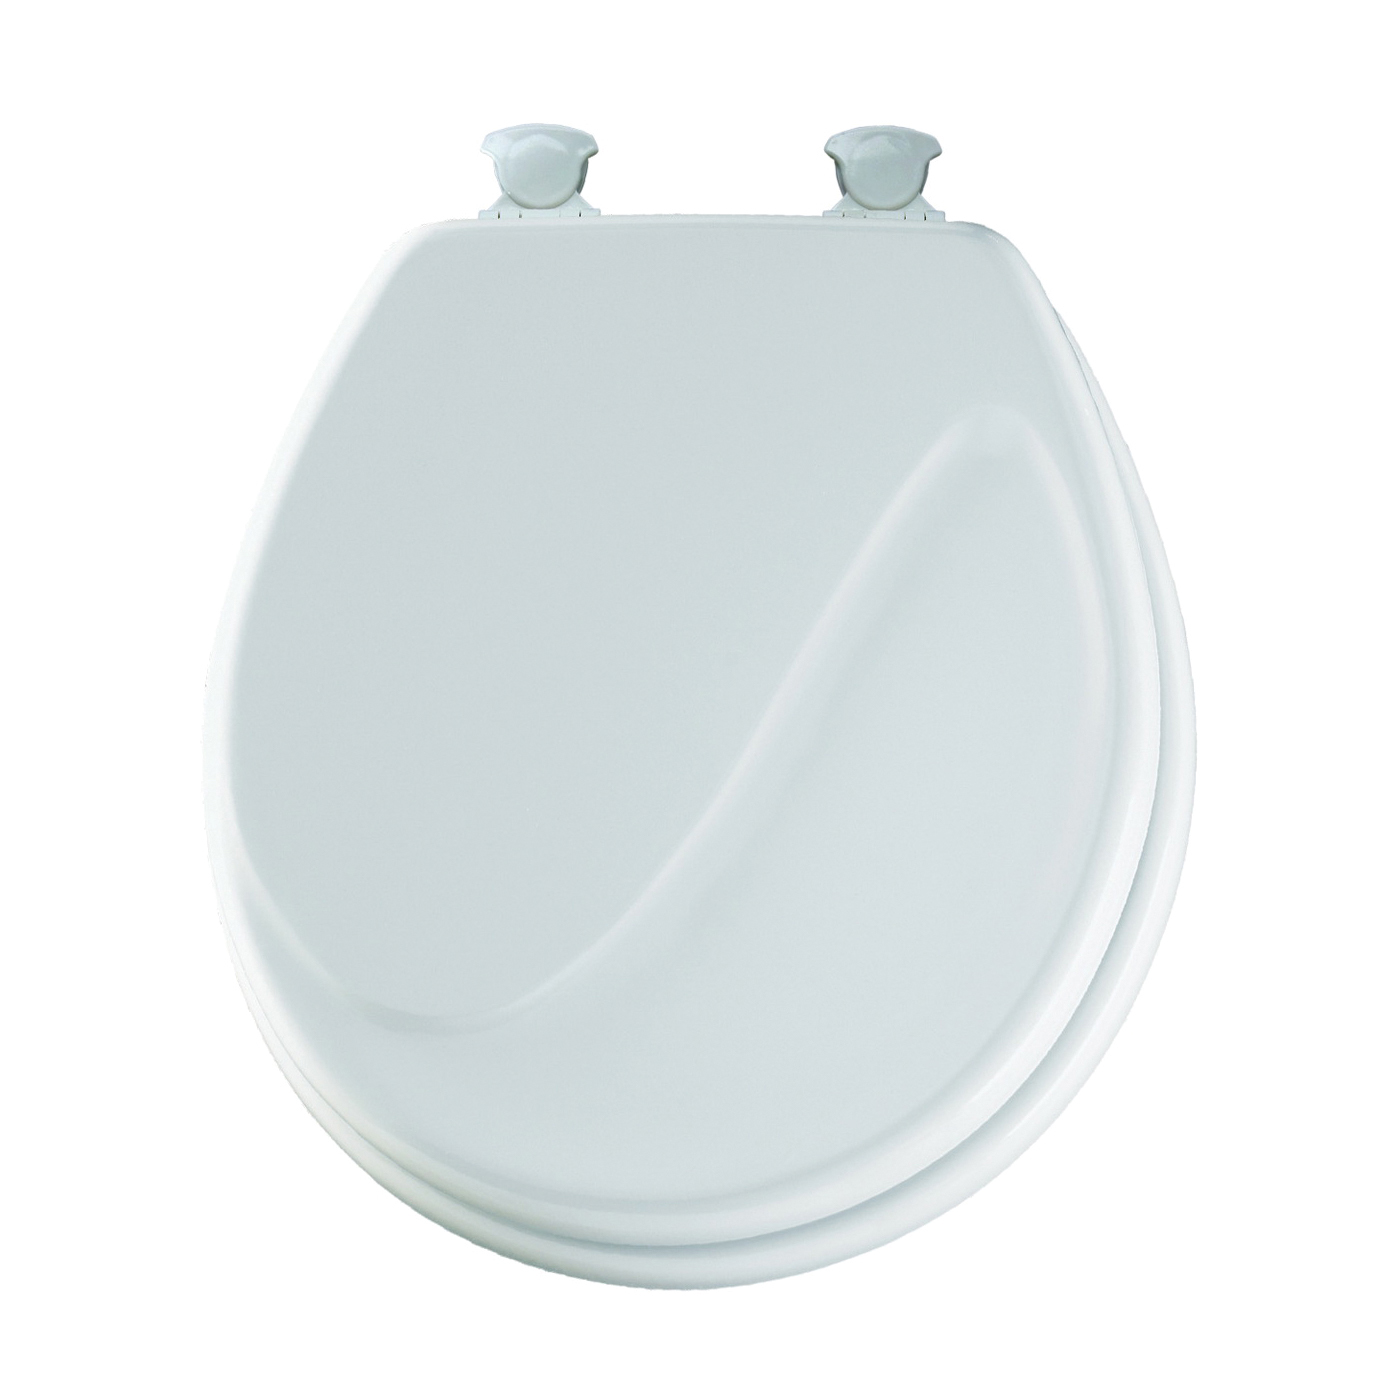 Picture of Mayfair Traditional 24EC-000 Toilet Seat, Round, Molded Wood, White, Twist Hinge